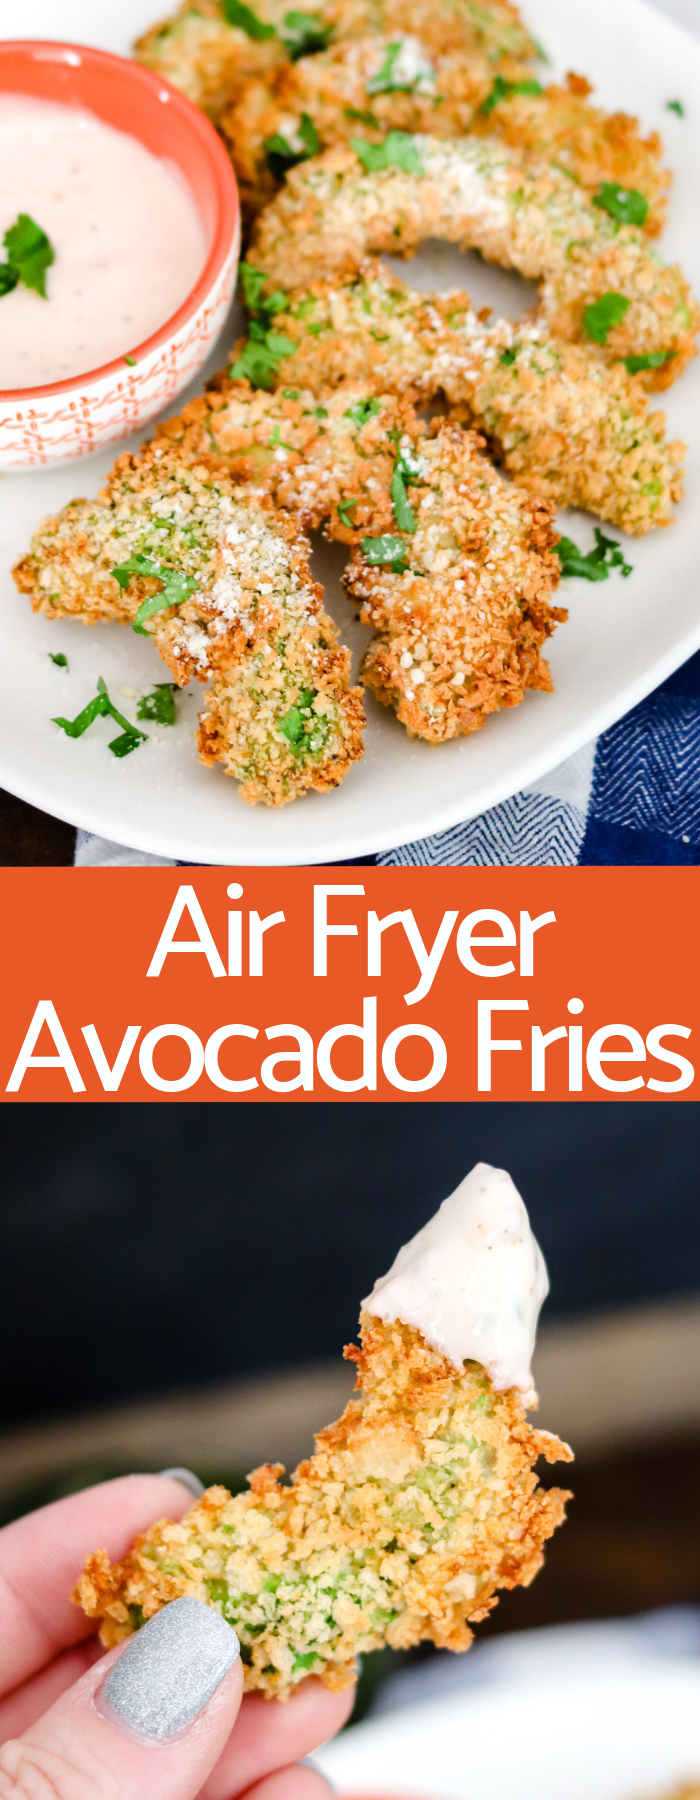 Air Fryer Avocado Fries are creamy and crunchy without any oily mess! With only a handful of ingredients, these are the perfect healthy snack or appetizer!